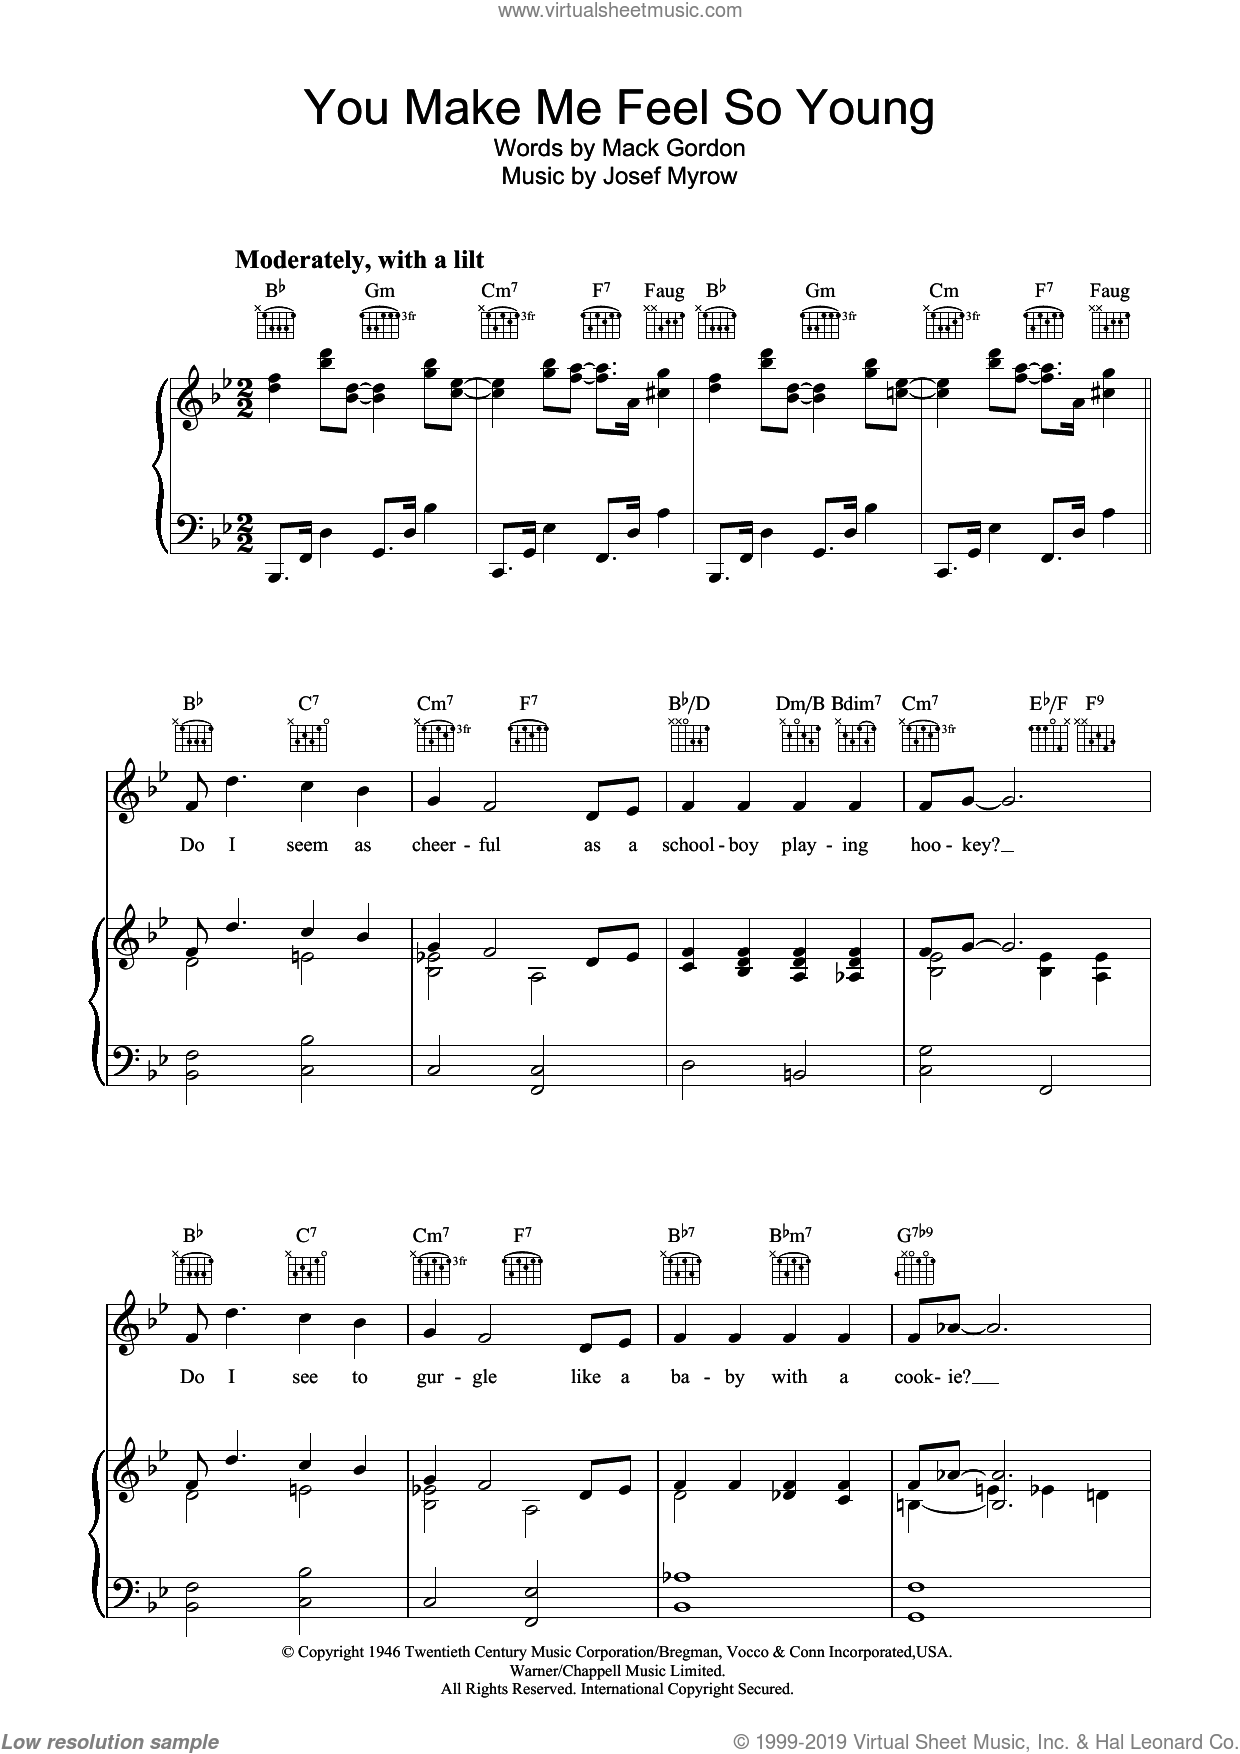 You Make Me Feel So Young sheet music for voice, piano or guitar by Frank Sinatra, Josef Myrow and Mack Gordon, intermediate voice, piano or guitar. Score Image Preview.